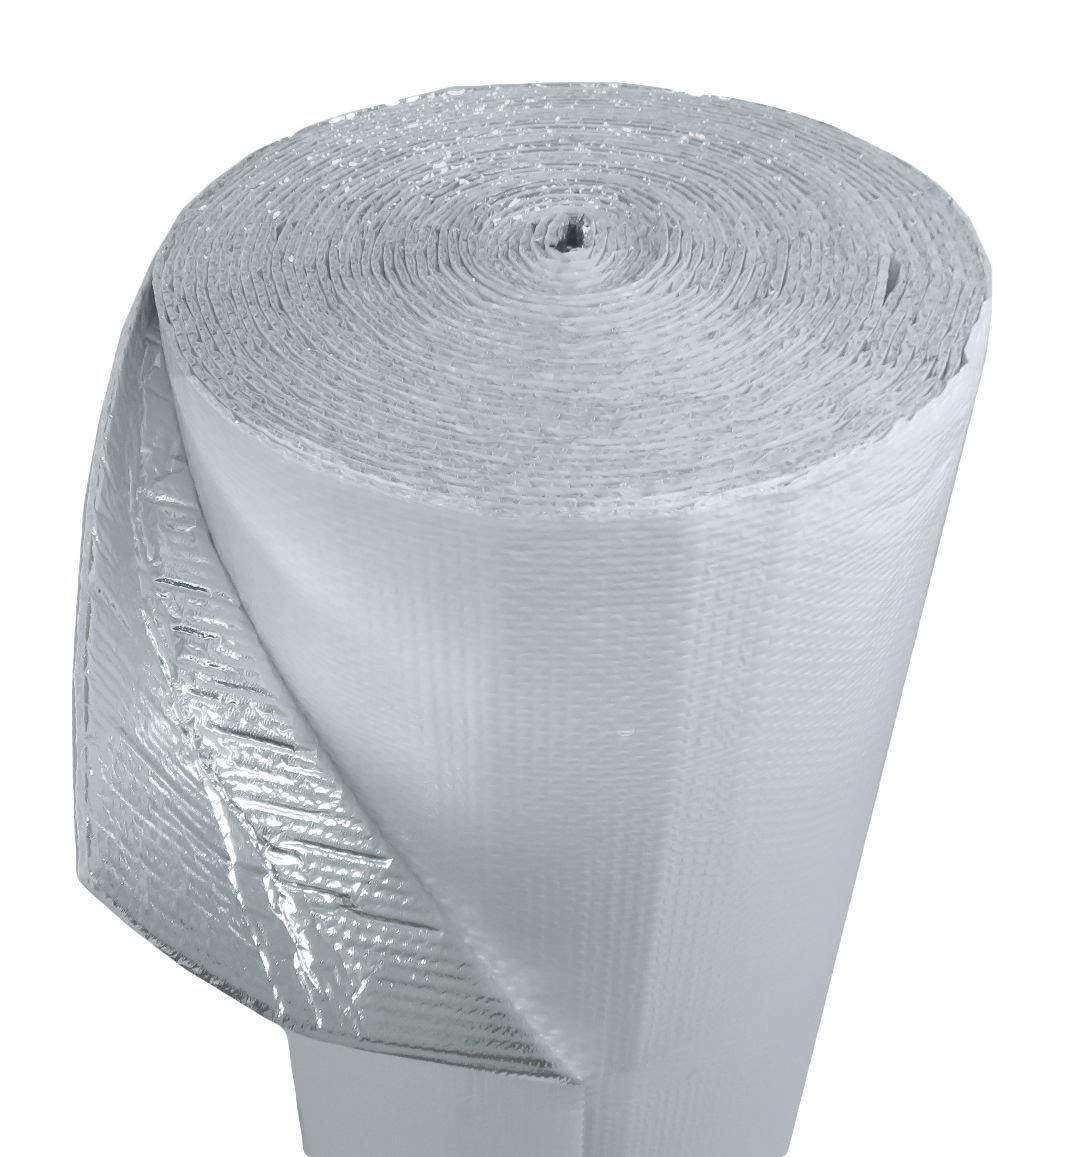 US Energy Products 500 sqft (4ft x 125ft) White DOUBLE Bubble (XTemp) Reflective Aluminum Insulation Roll Solid Metal Building Vapor Barrier - White Concrete Commercial Residential House Buildings